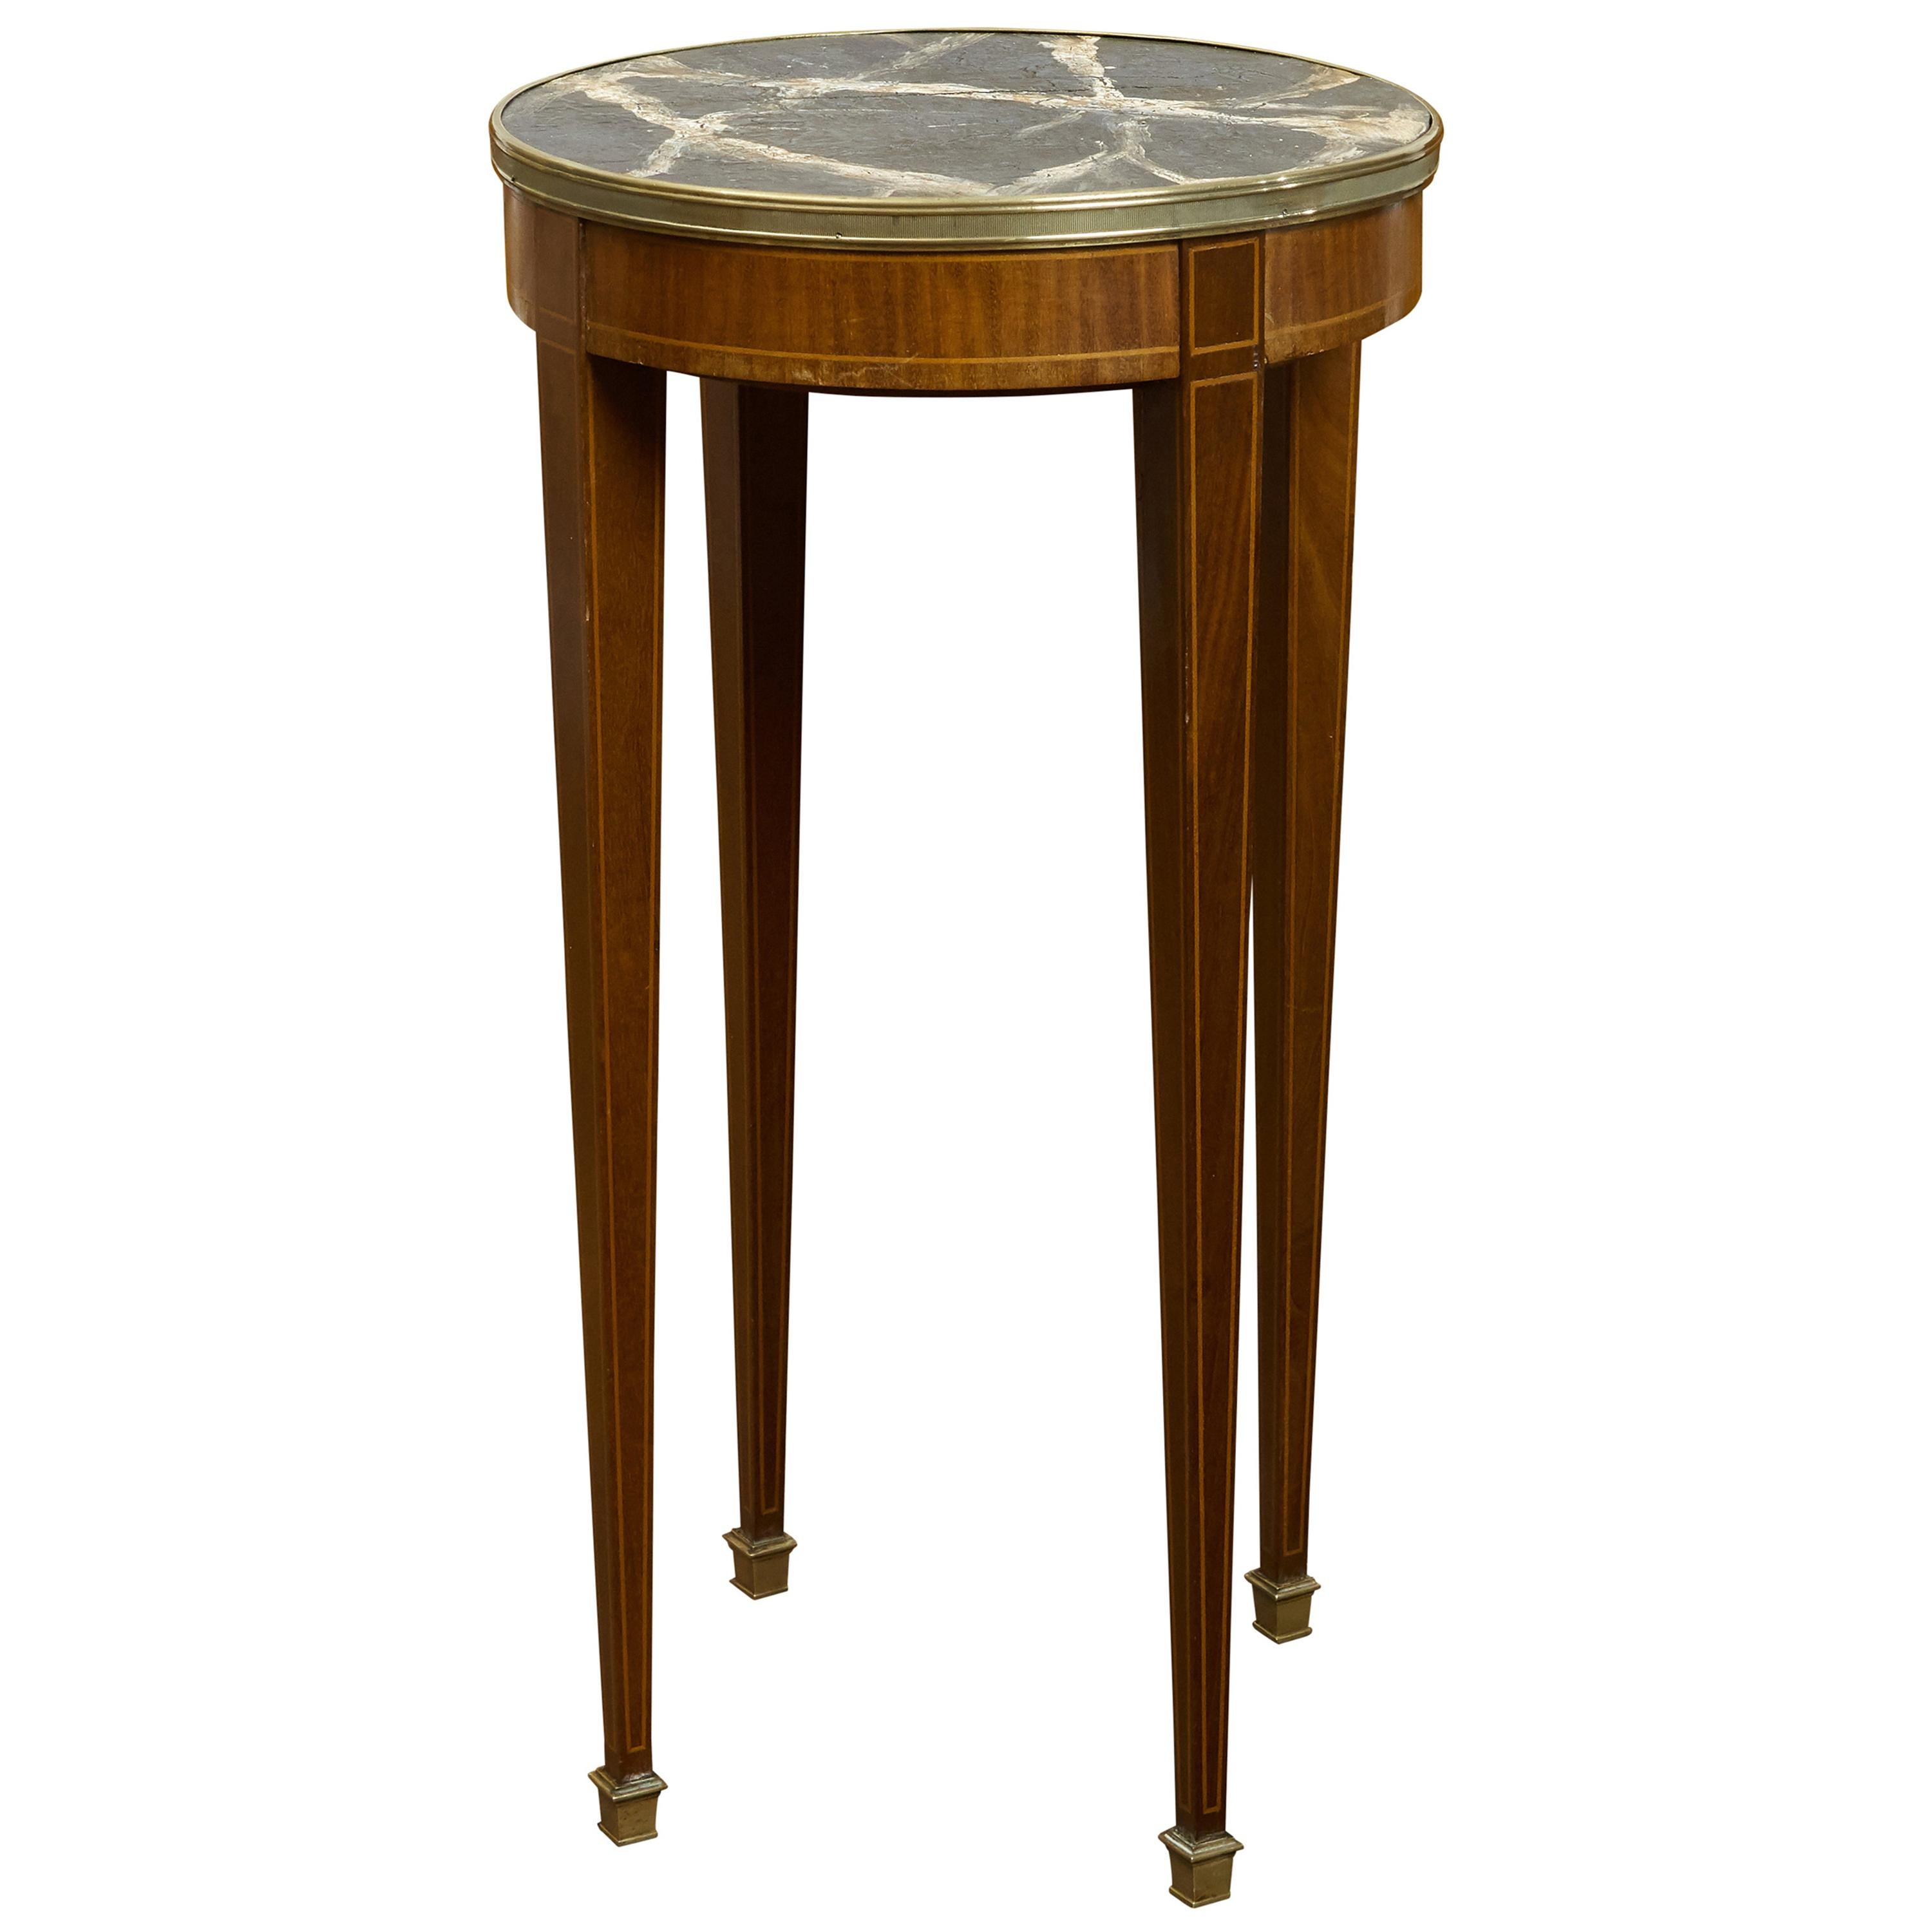 French 1880s Mahogany Guéridon Side Table with Faux Marble Painted Top